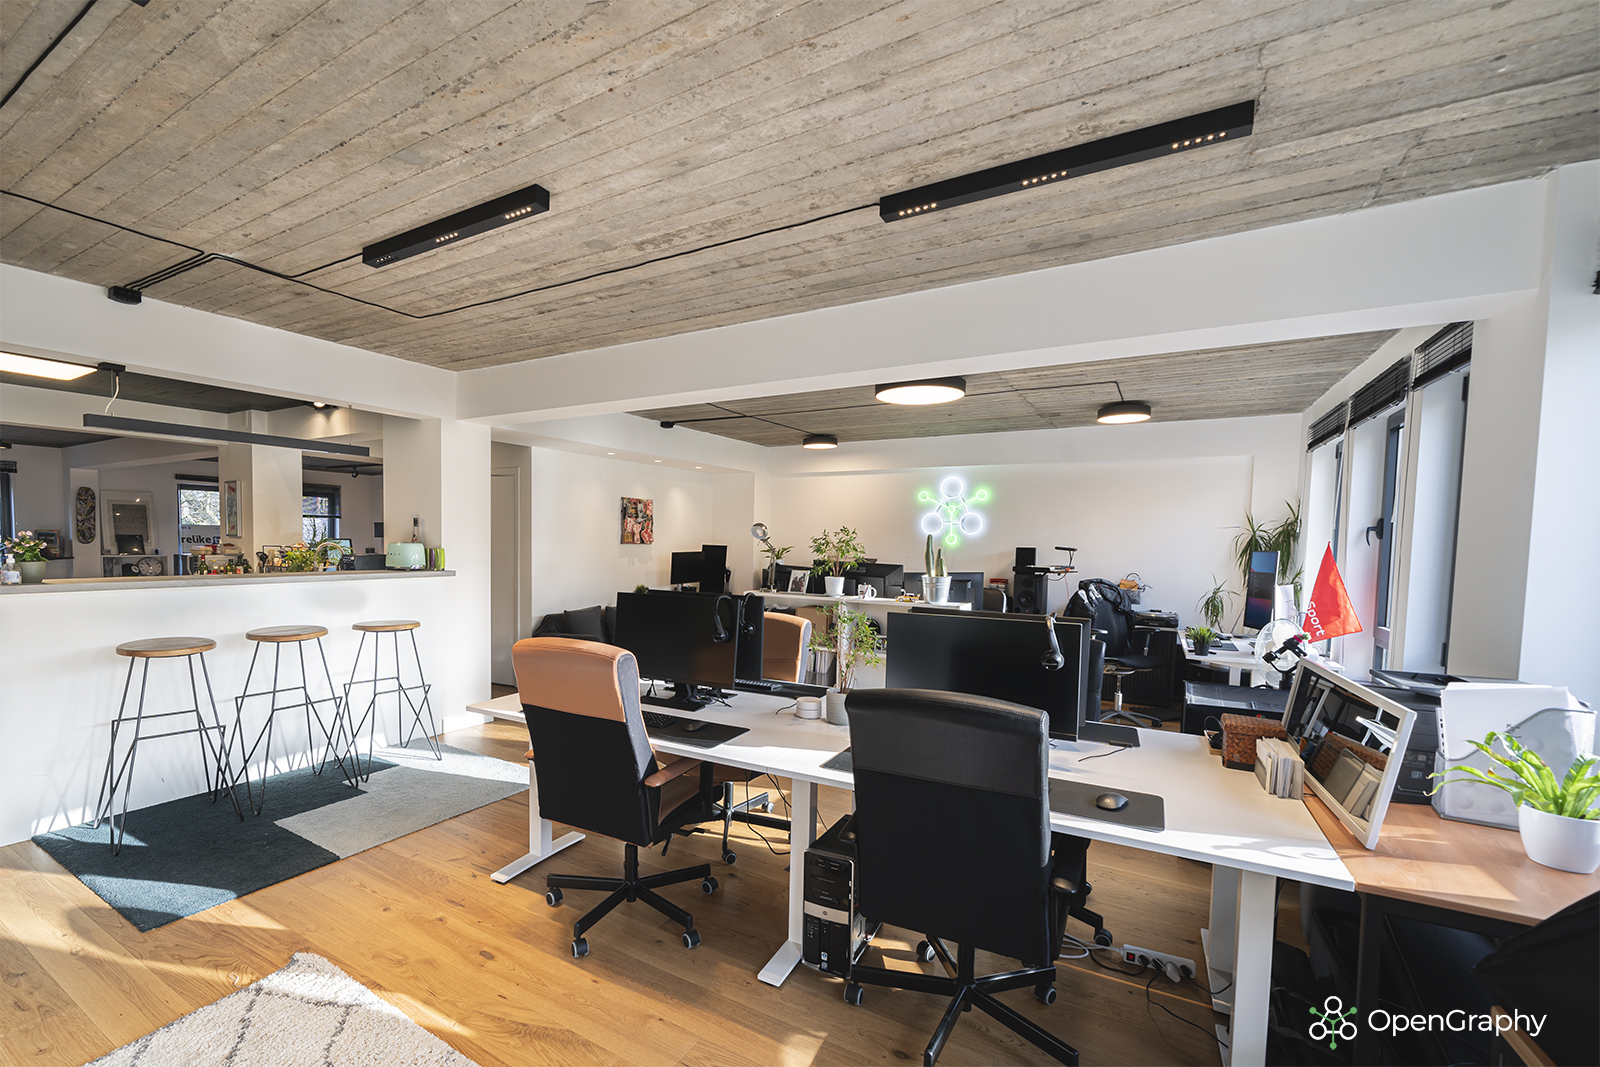 Opengraphy Office